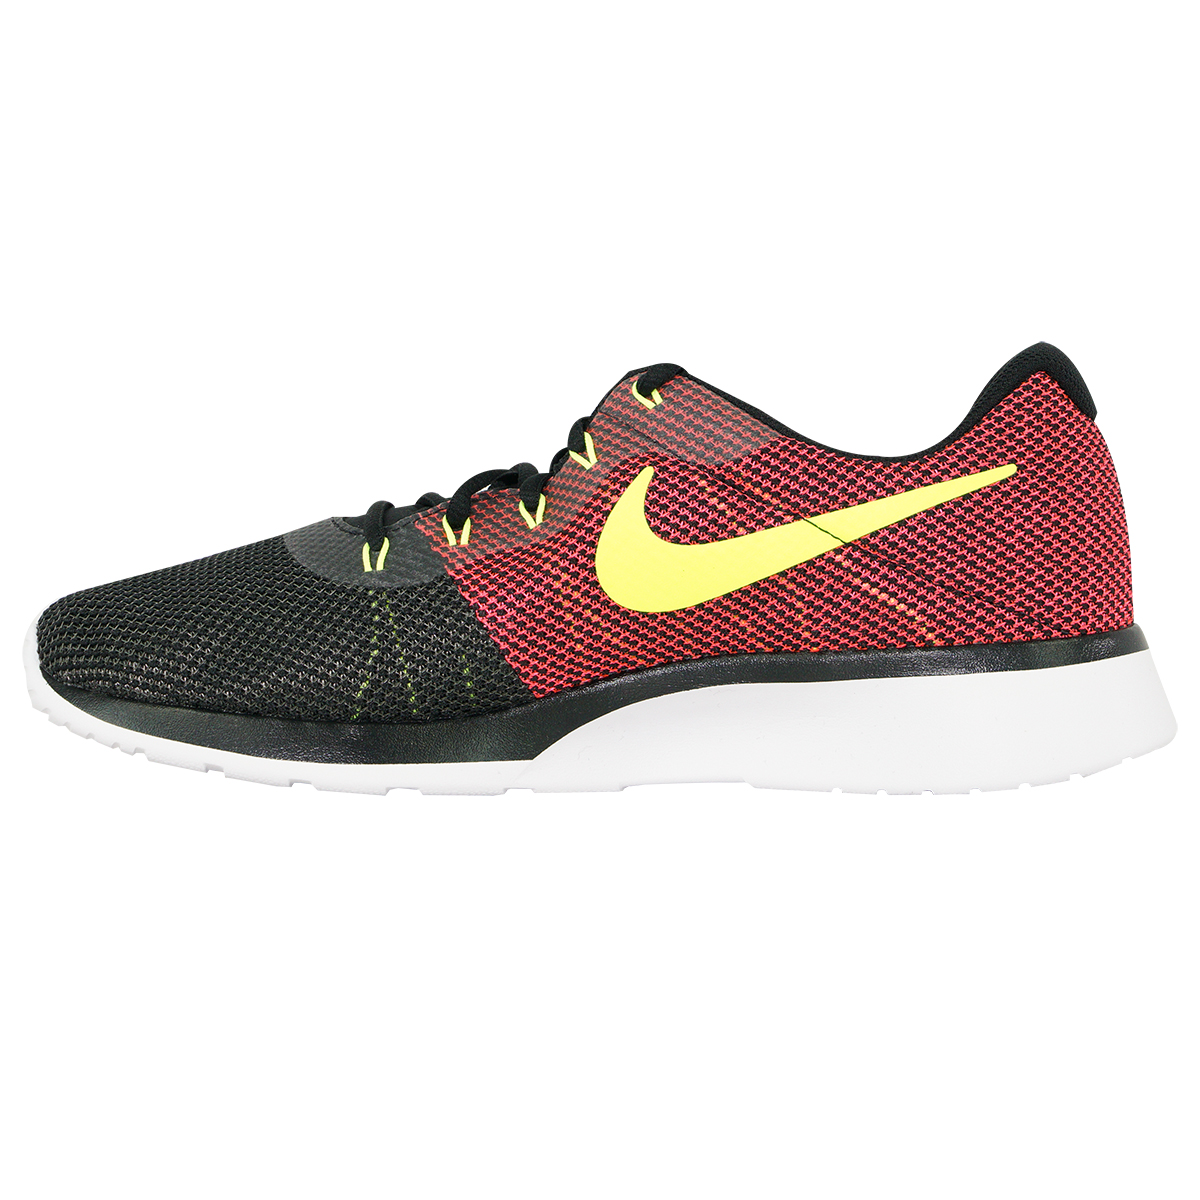 Nike-Men-039-s-Tanjun-Racer-Running-Shoes thumbnail 3